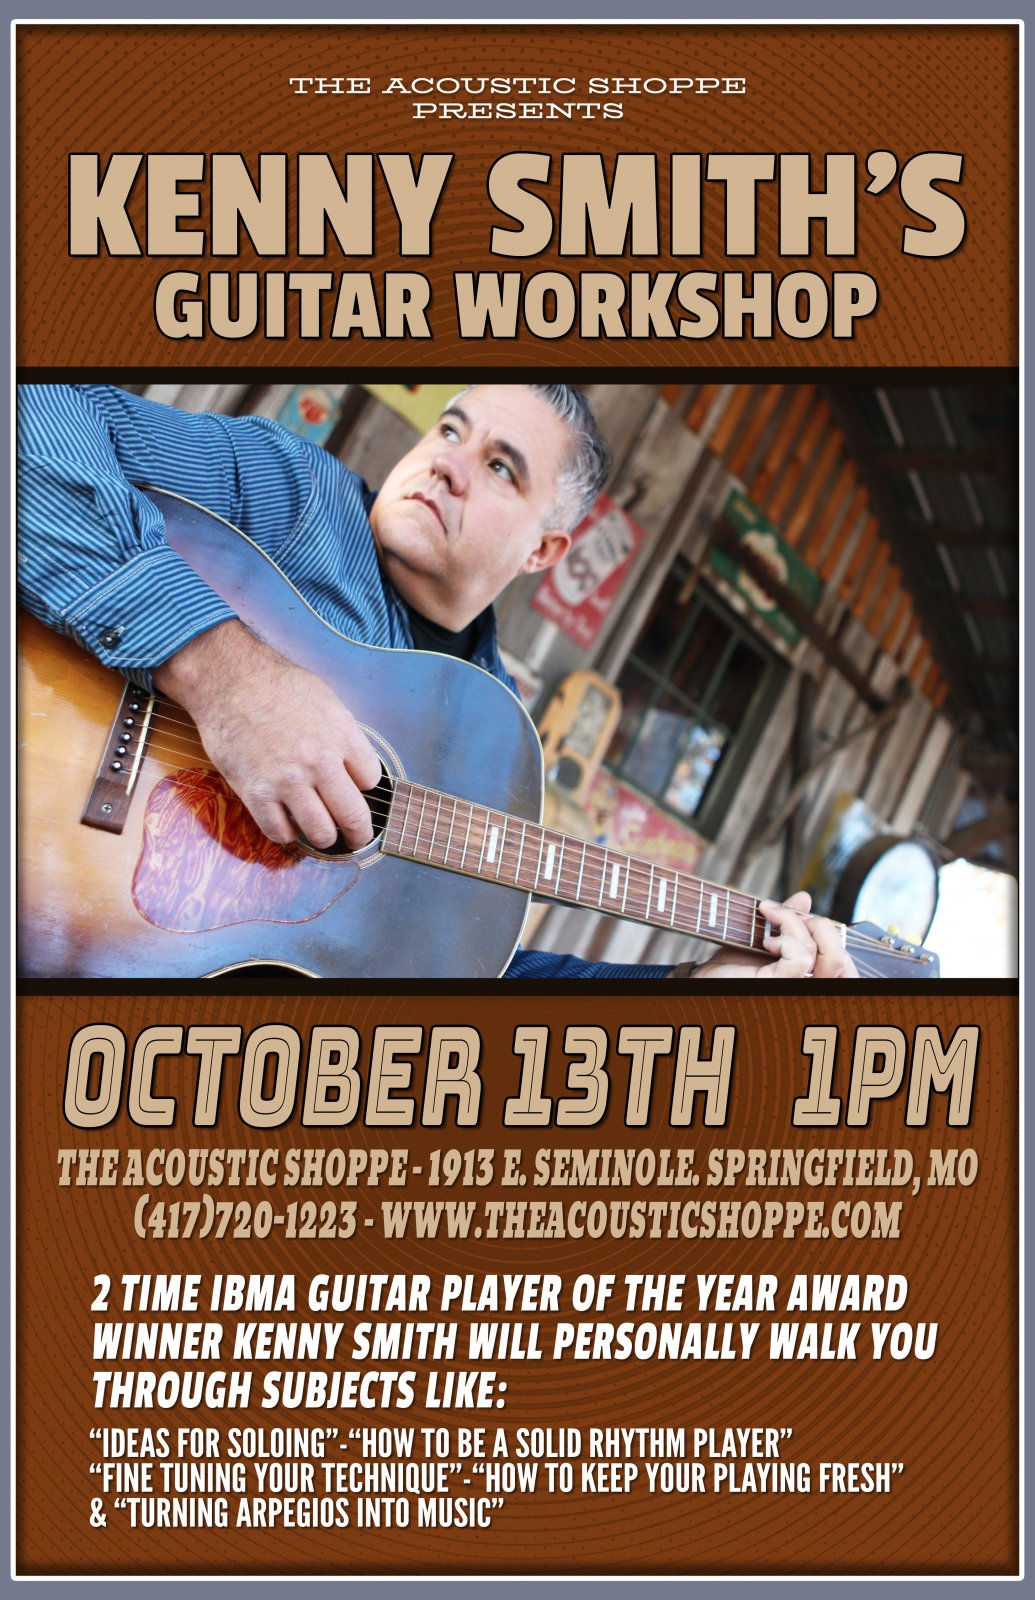 Kenny Smith @ The Acoustic Shoppe Guitar Workshop Ticket